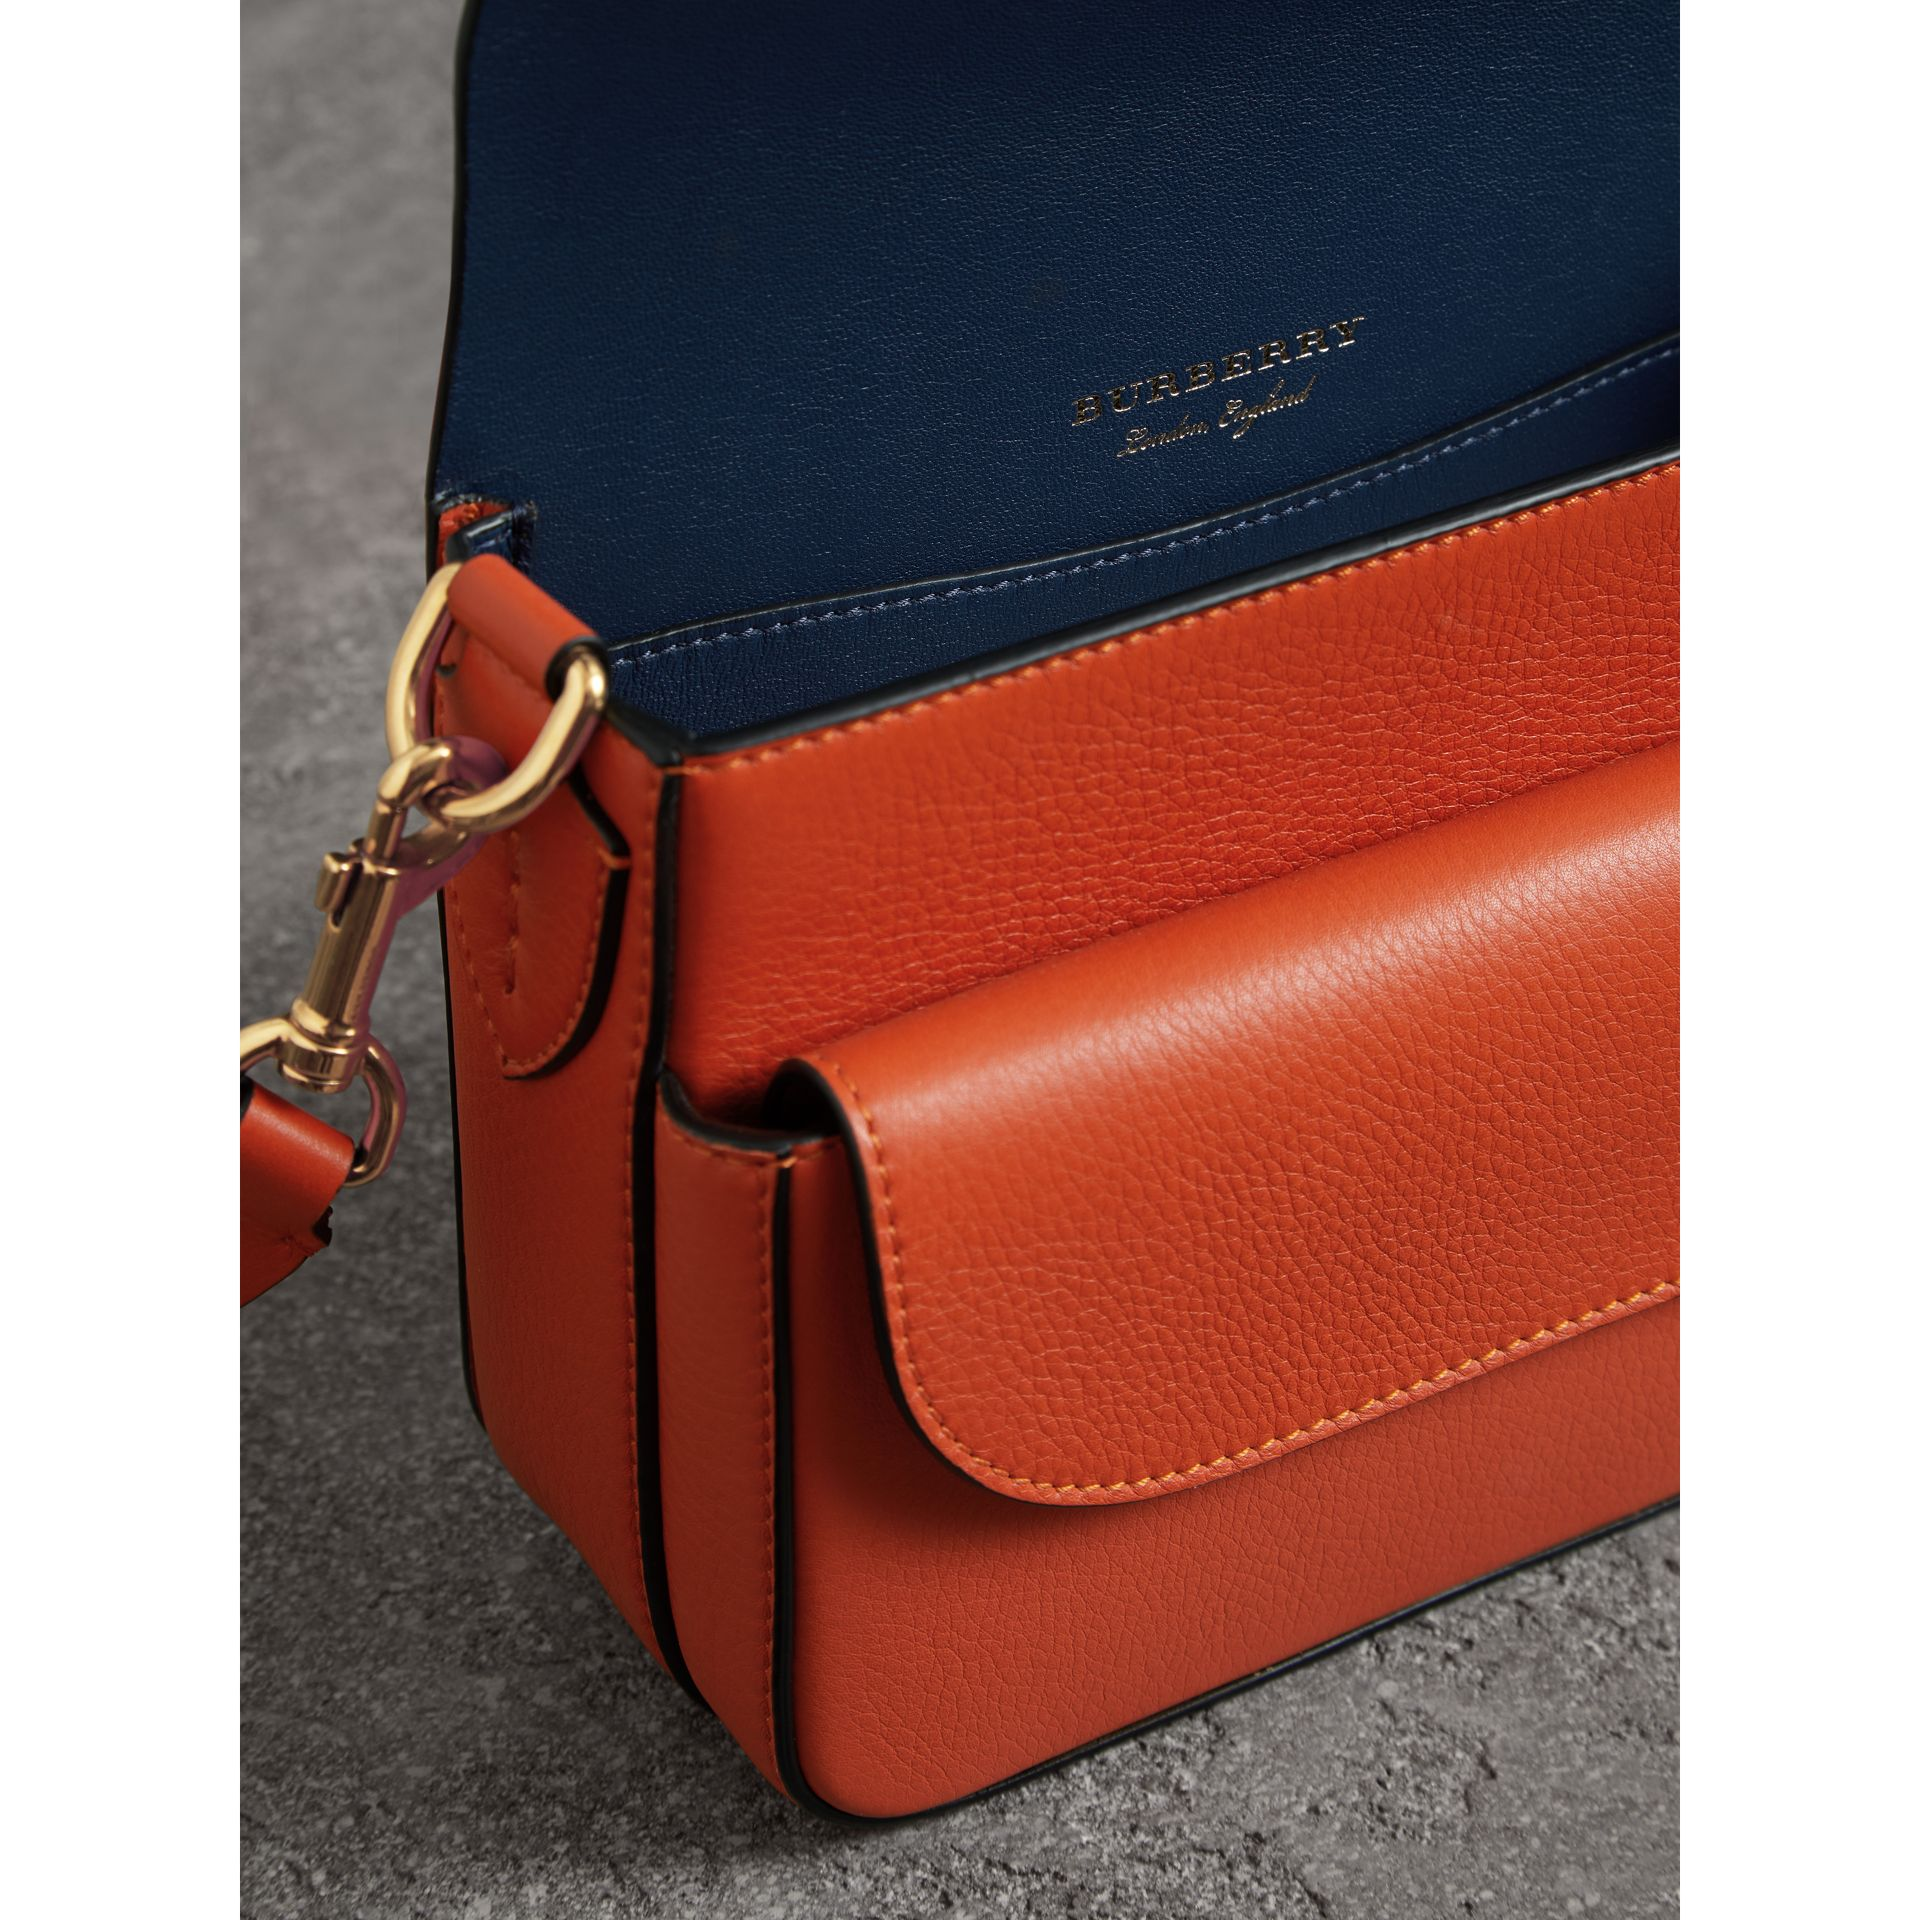 The Square Satchel in Leather in Clementine - Women | Burberry United States - gallery image 5